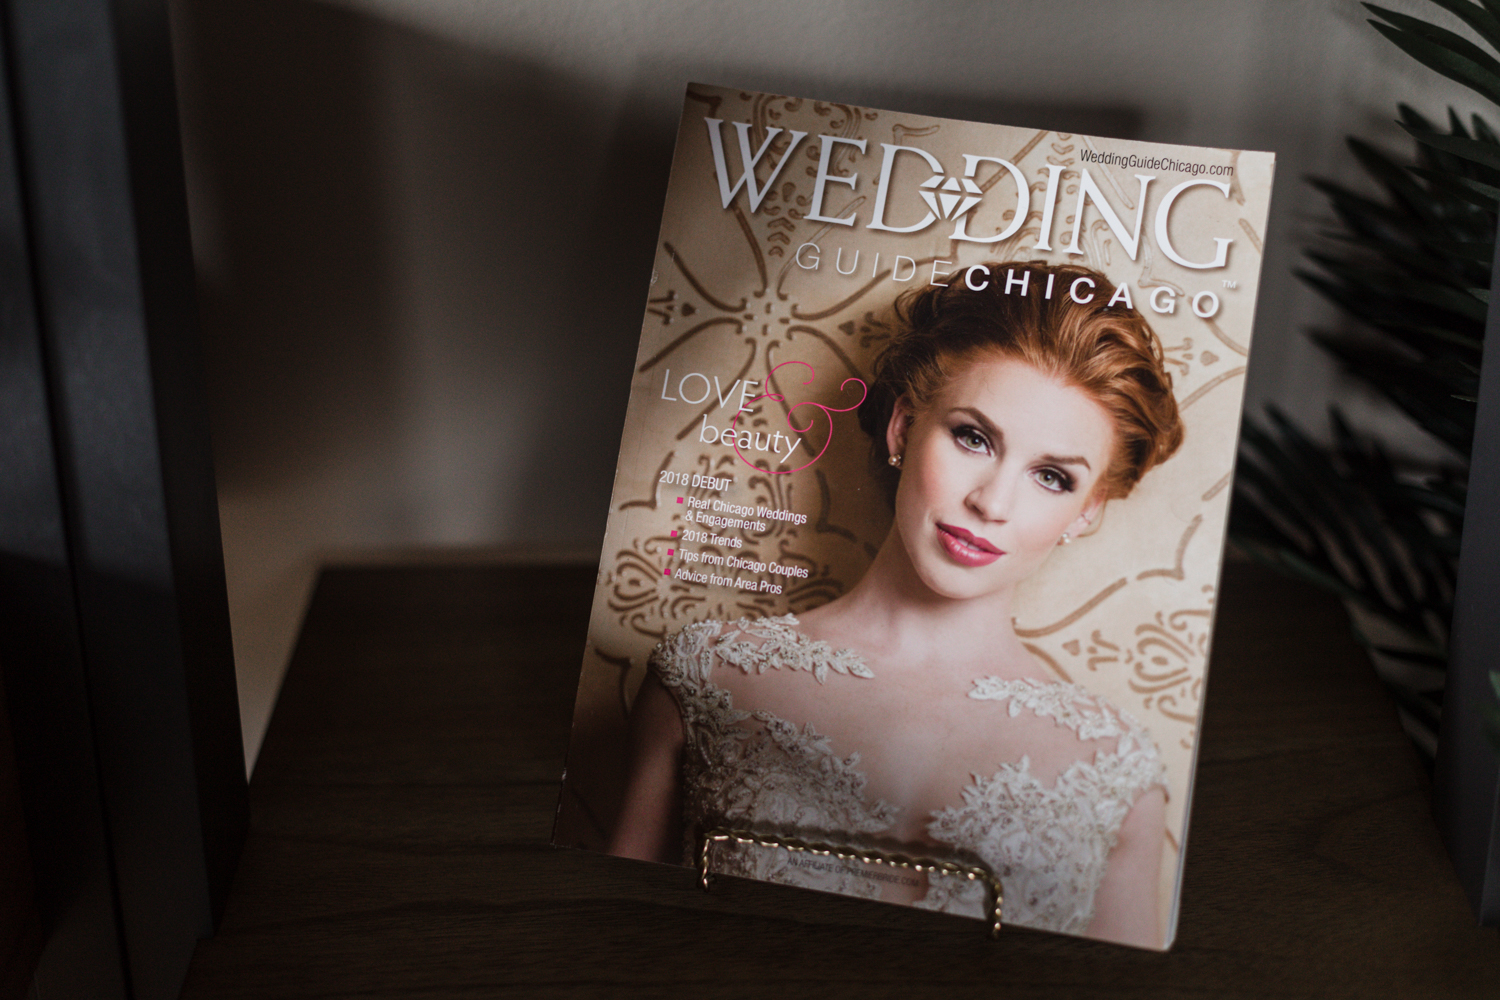 Wedding Guide Chicago with Deco Adamo's beauty company's work on the cover